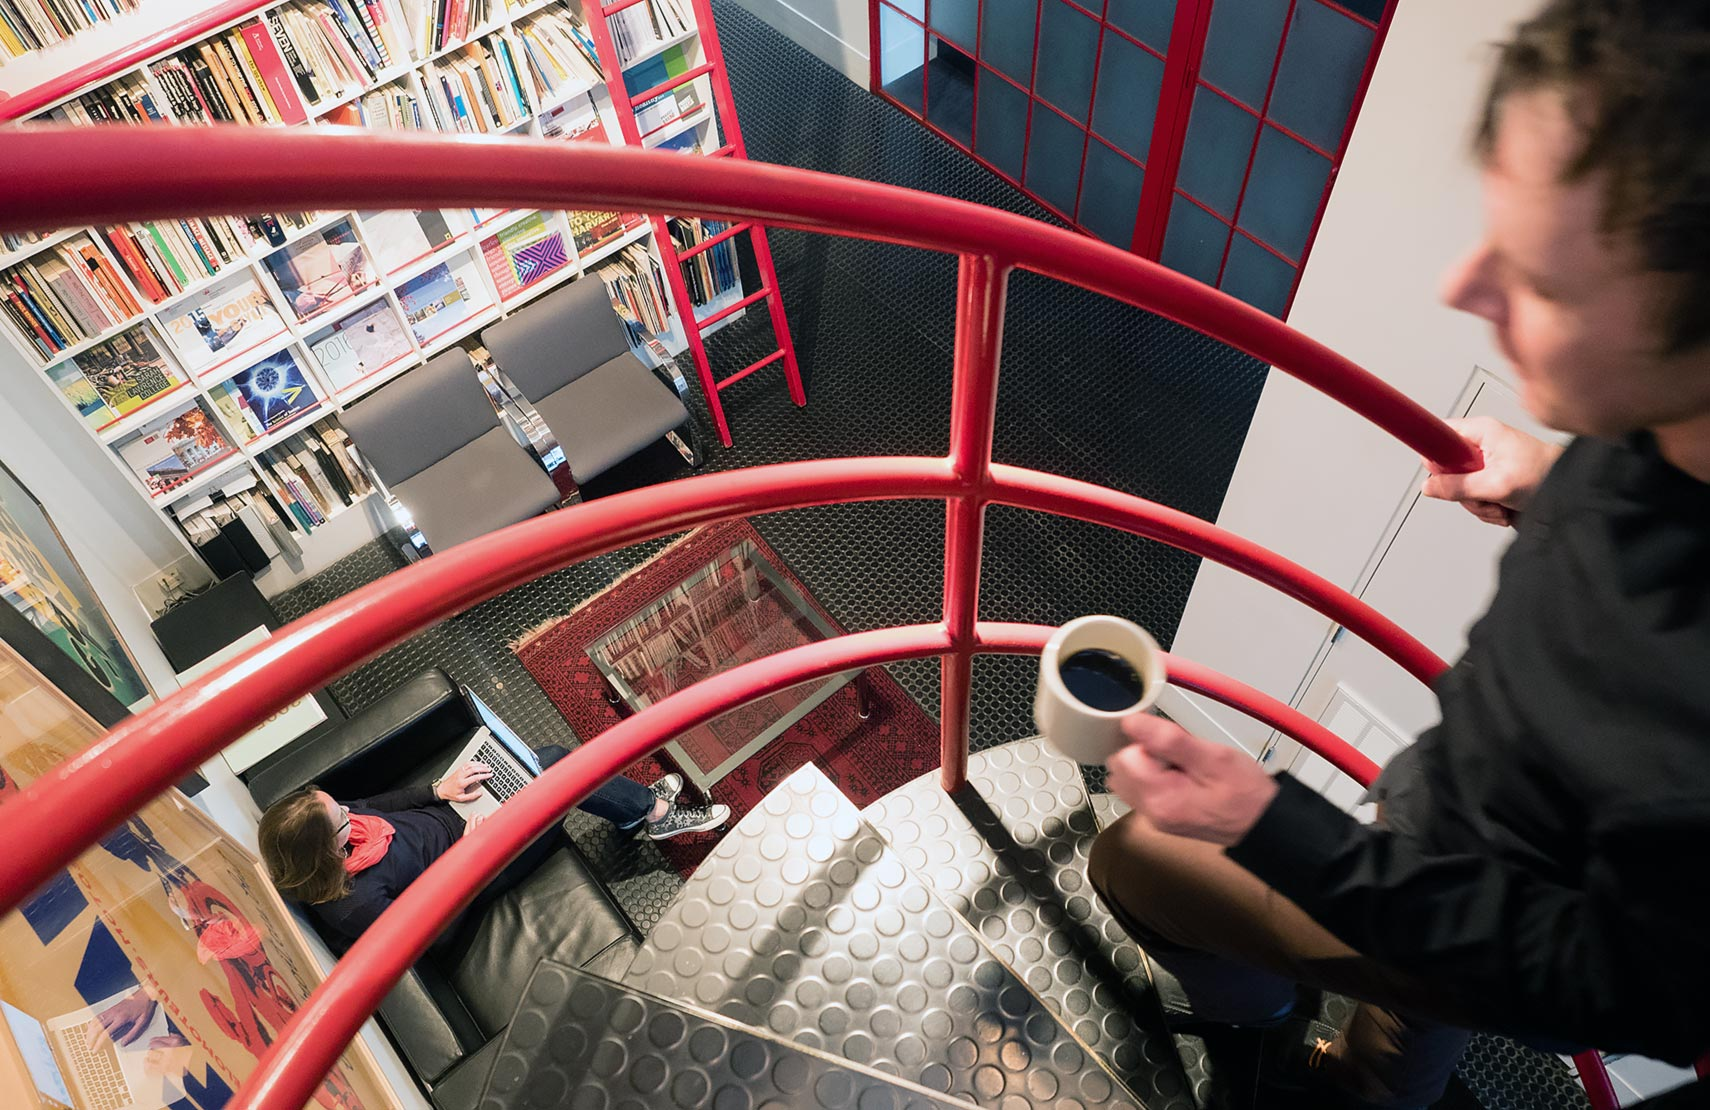 View from the top of the spiral staircase in Sametz Blackstone Associates; Paul Kruczynski a walking up the stairs and Ange Romanska sitting on the couch down below